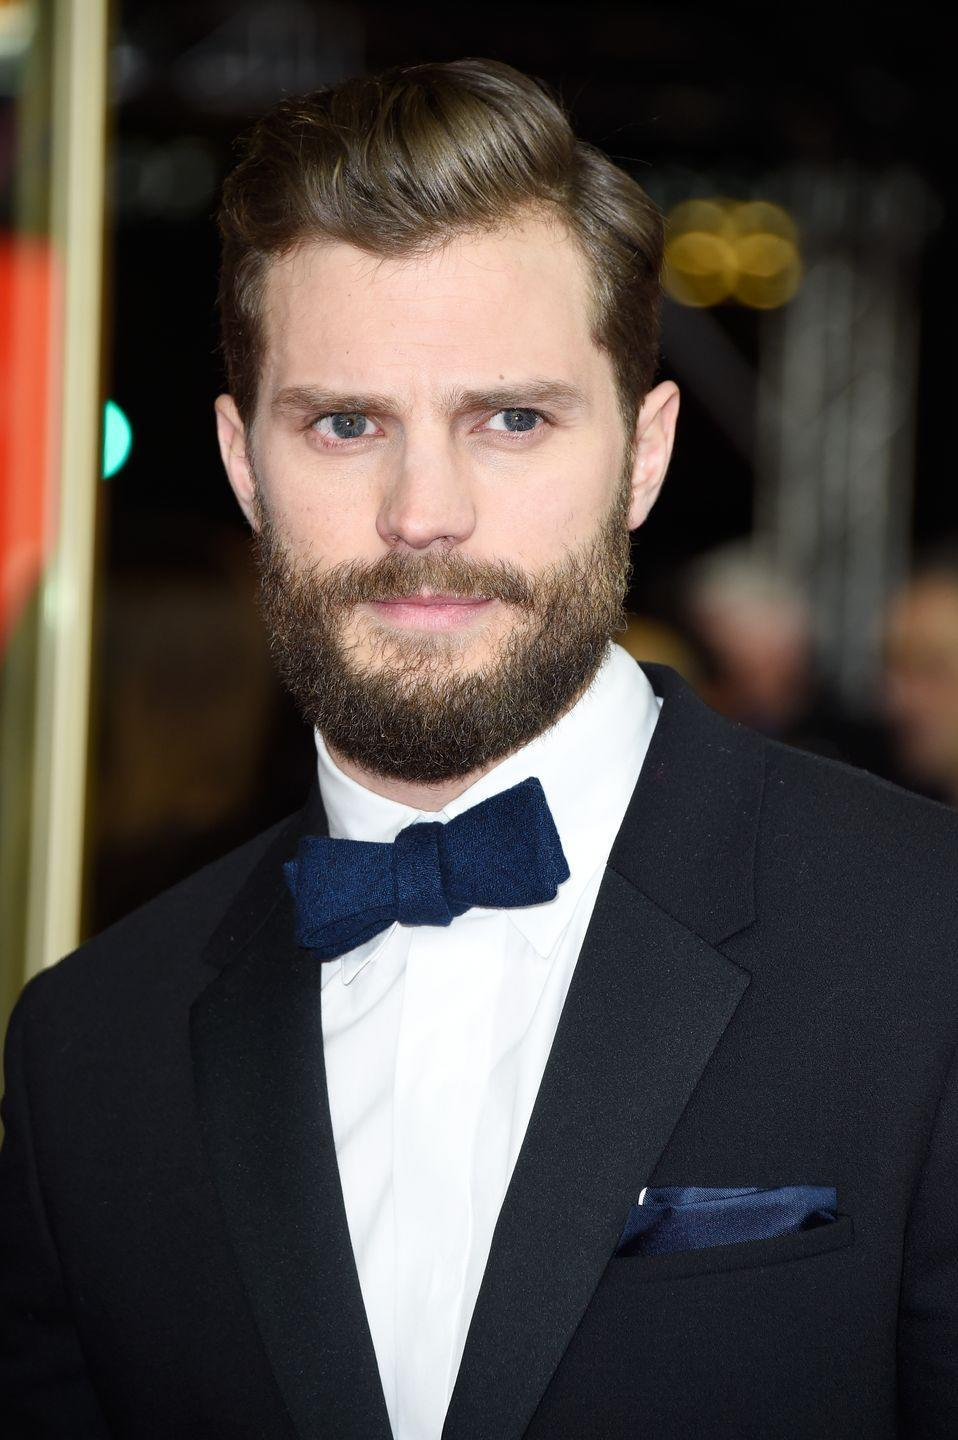 <p>We'll just say it: Dornan's full lumberjack beard is 50 shades of manly and without it, well, you'll see...</p>